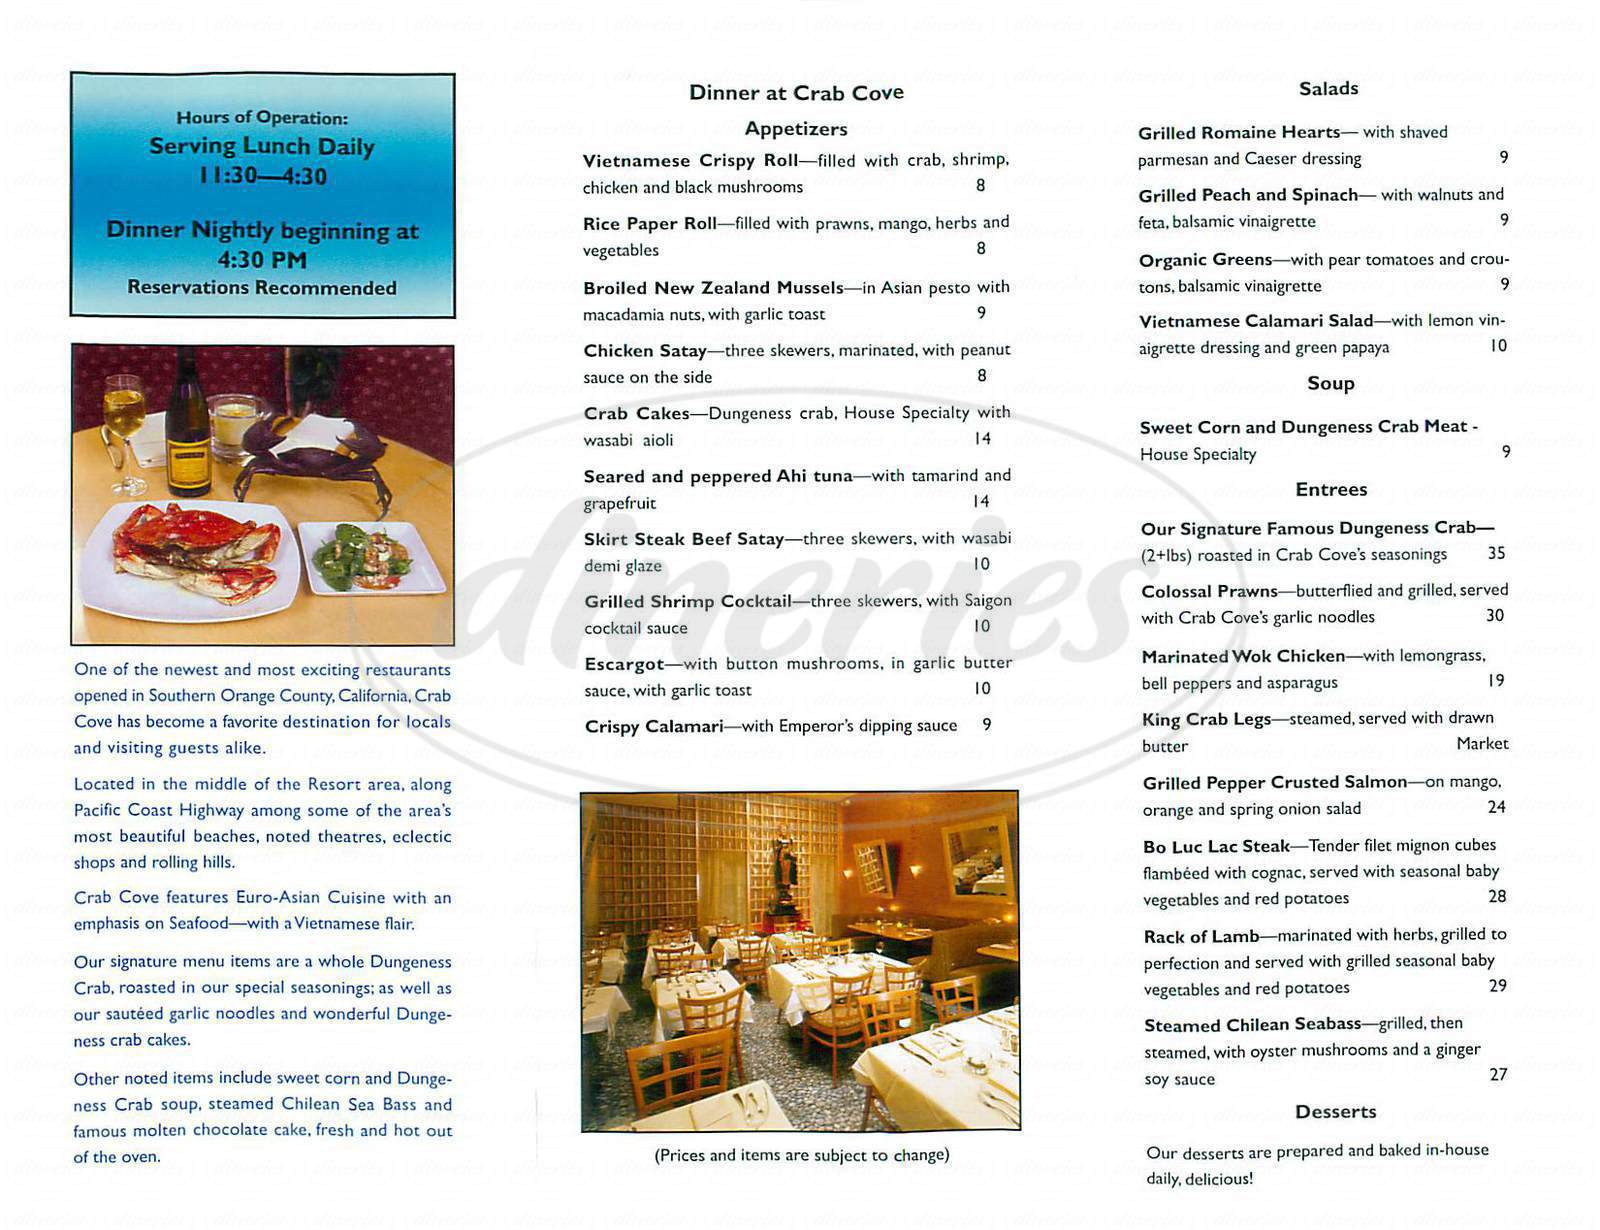 menu for Crab Cove Euroasian Cuisine